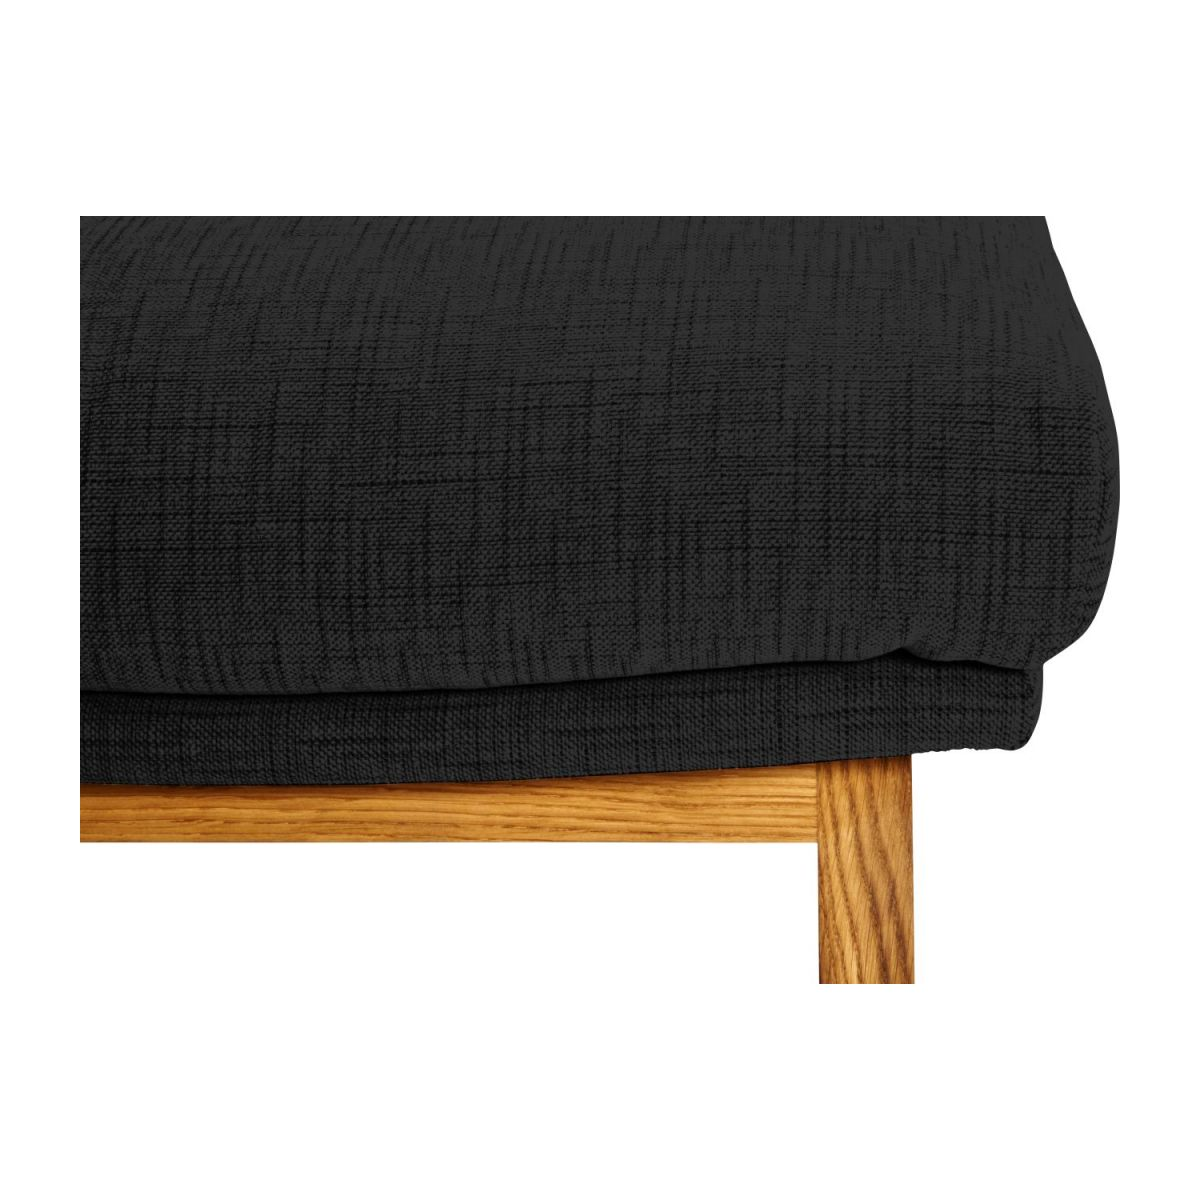 Footstool in Ancio fabric, nero with oak legs n°6